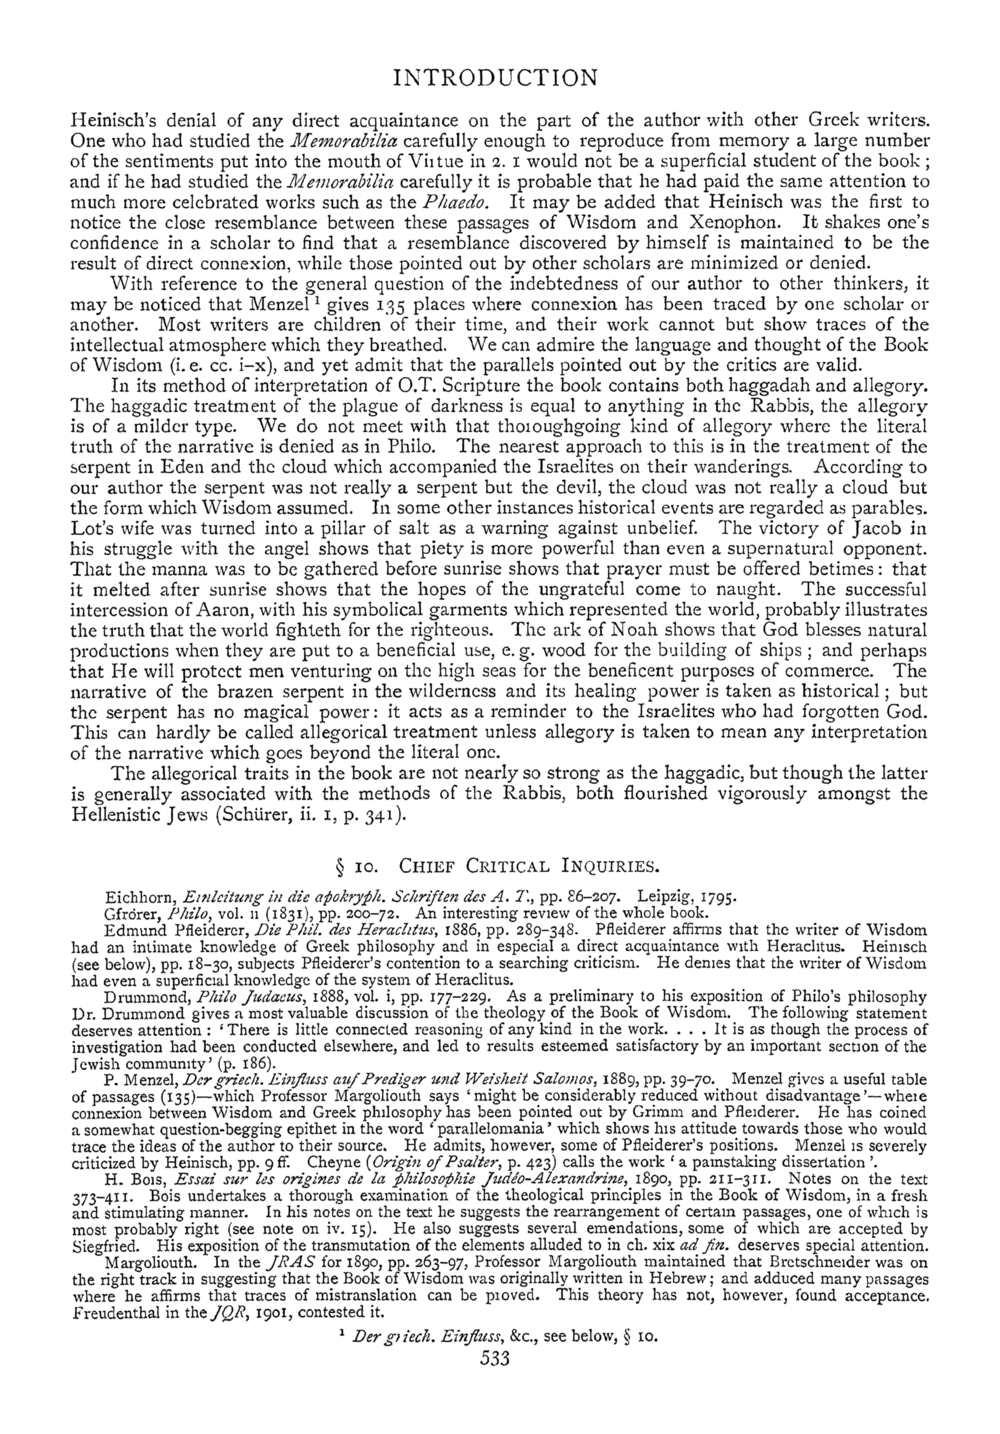 Image of page 533